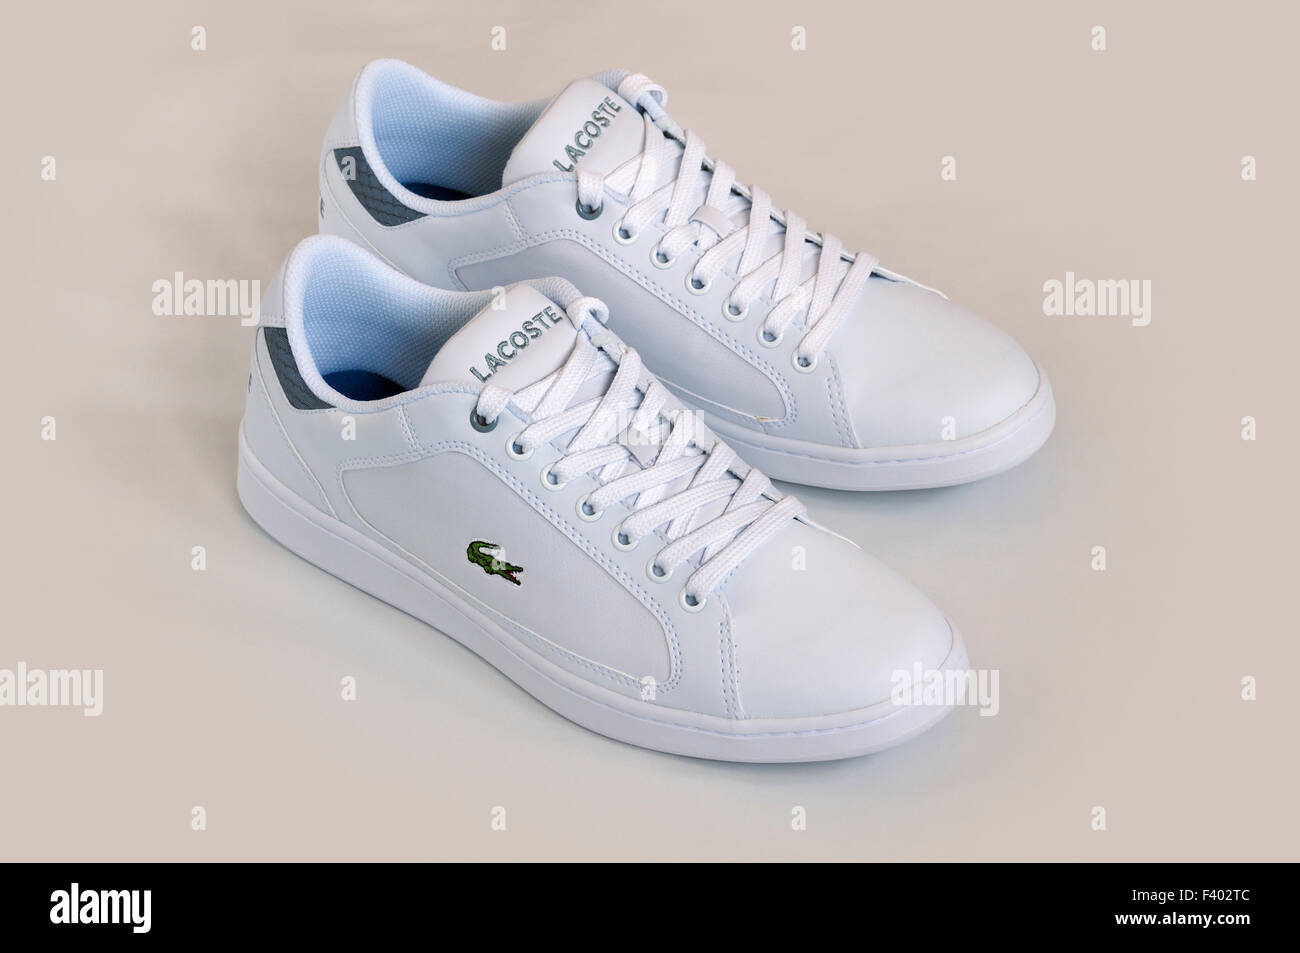 Lacoste trainers Stock Photo - Alamy